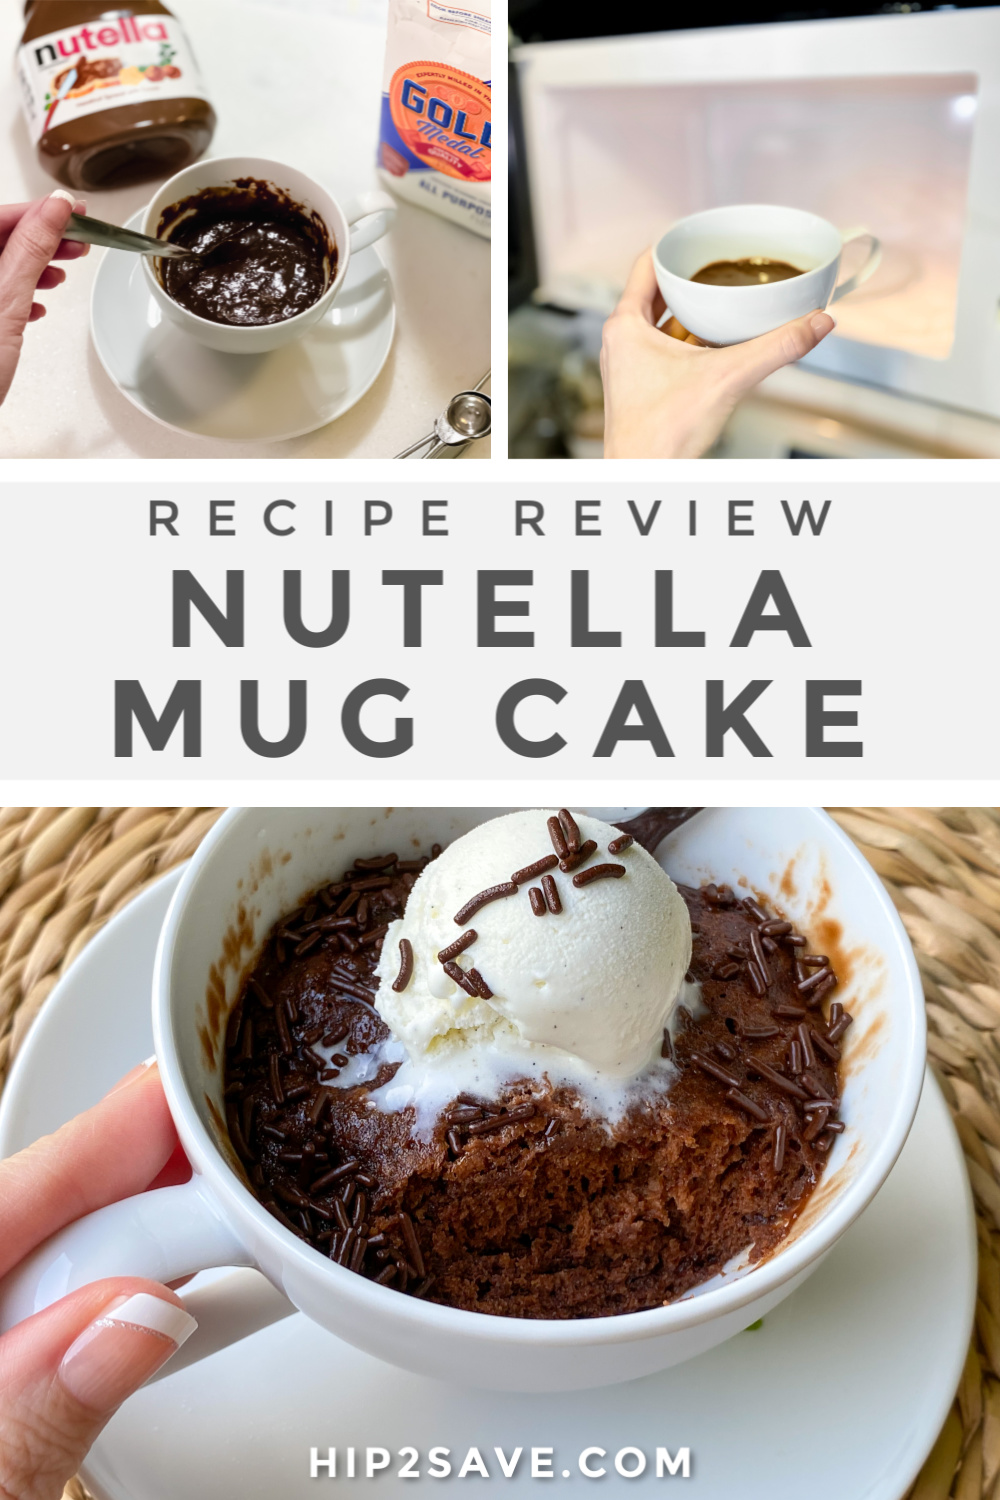 Easy 3-Ingredient Nutella Mug Cake Recipe (Microwaves in 1 ...